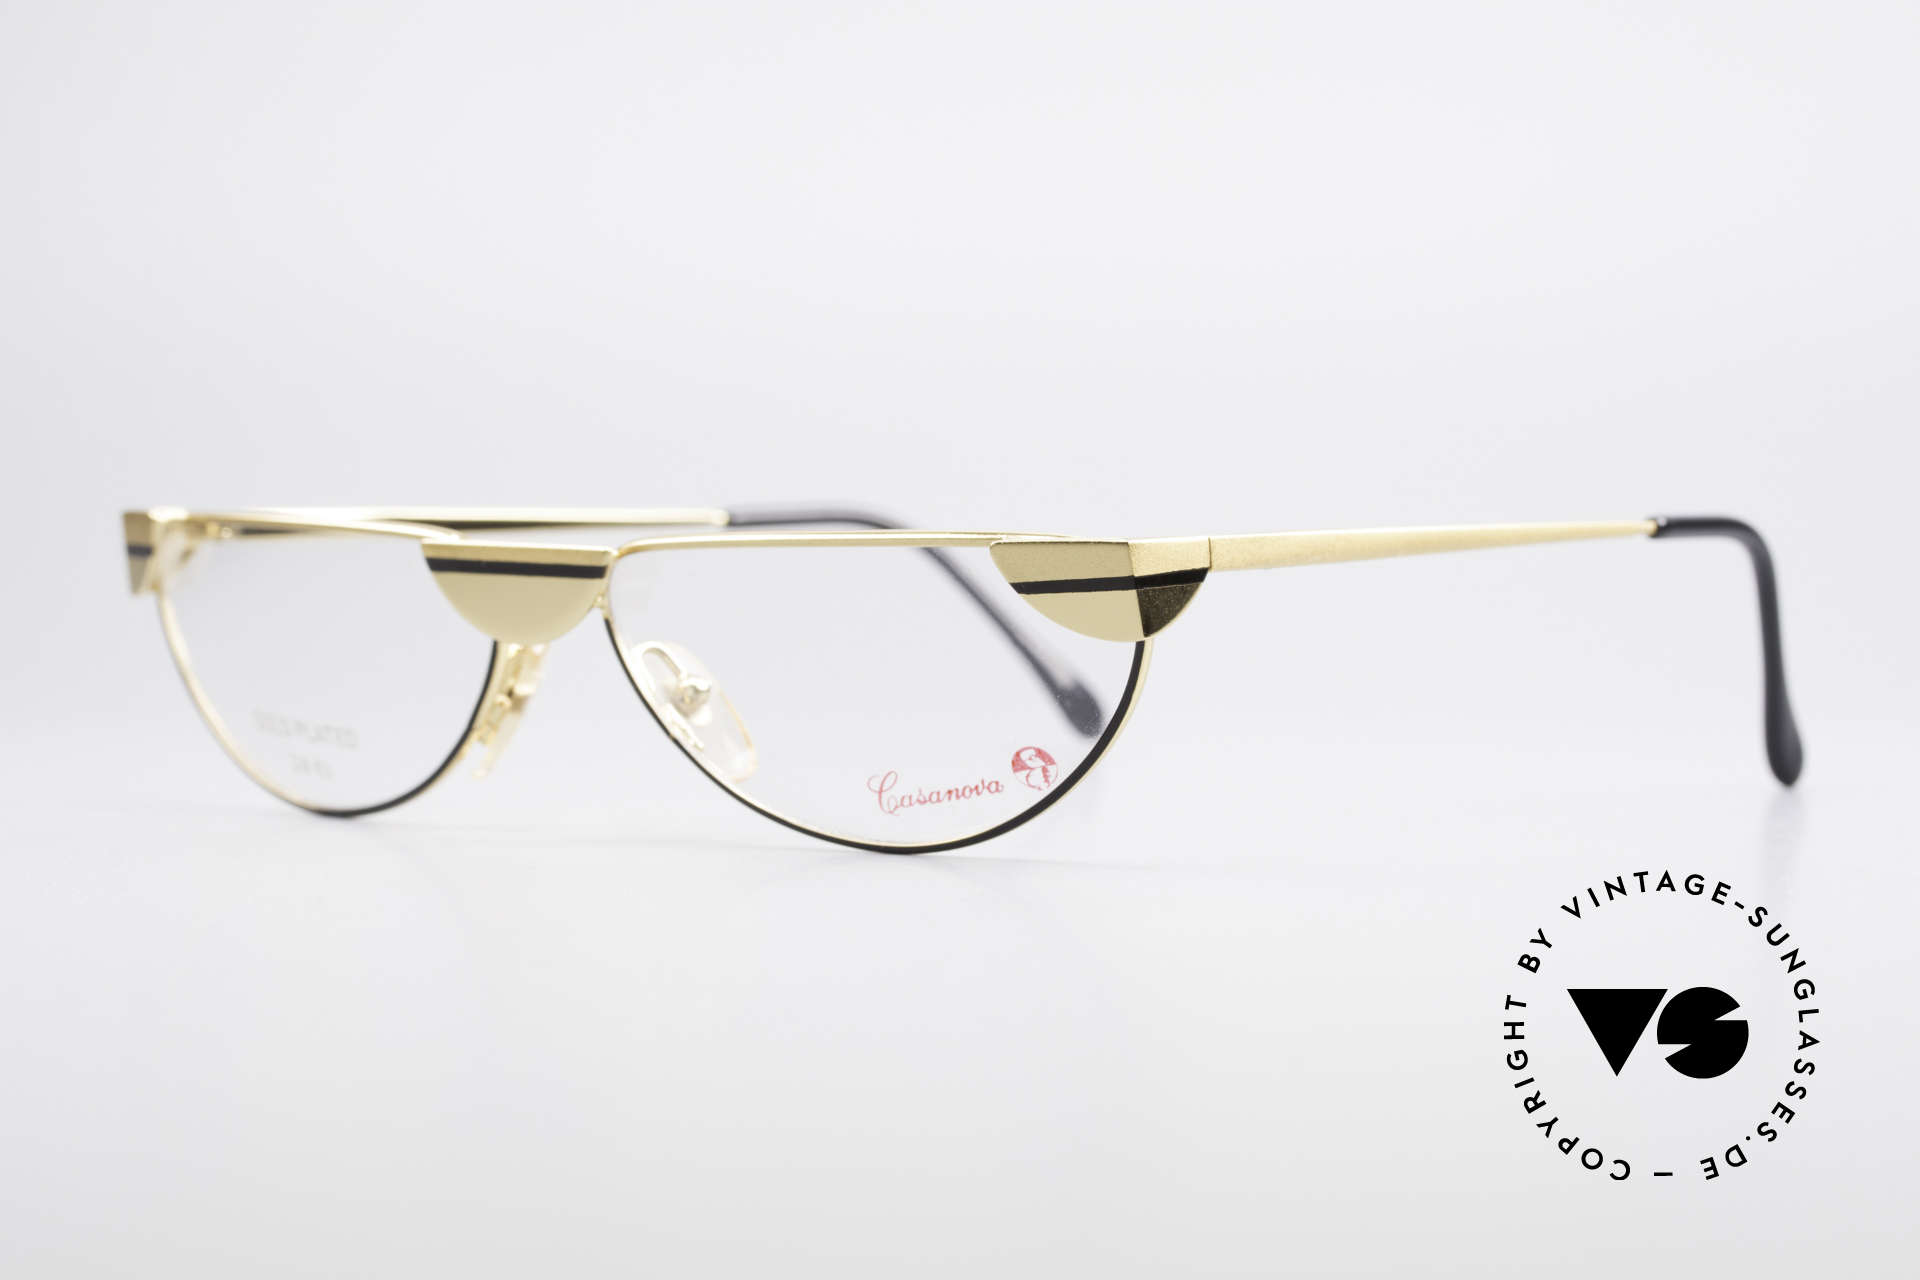 Casanova NM5 Gold Plated Reading Glasses, at the time of the Italian writer Giacomo G. Casanova, Made for Men and Women